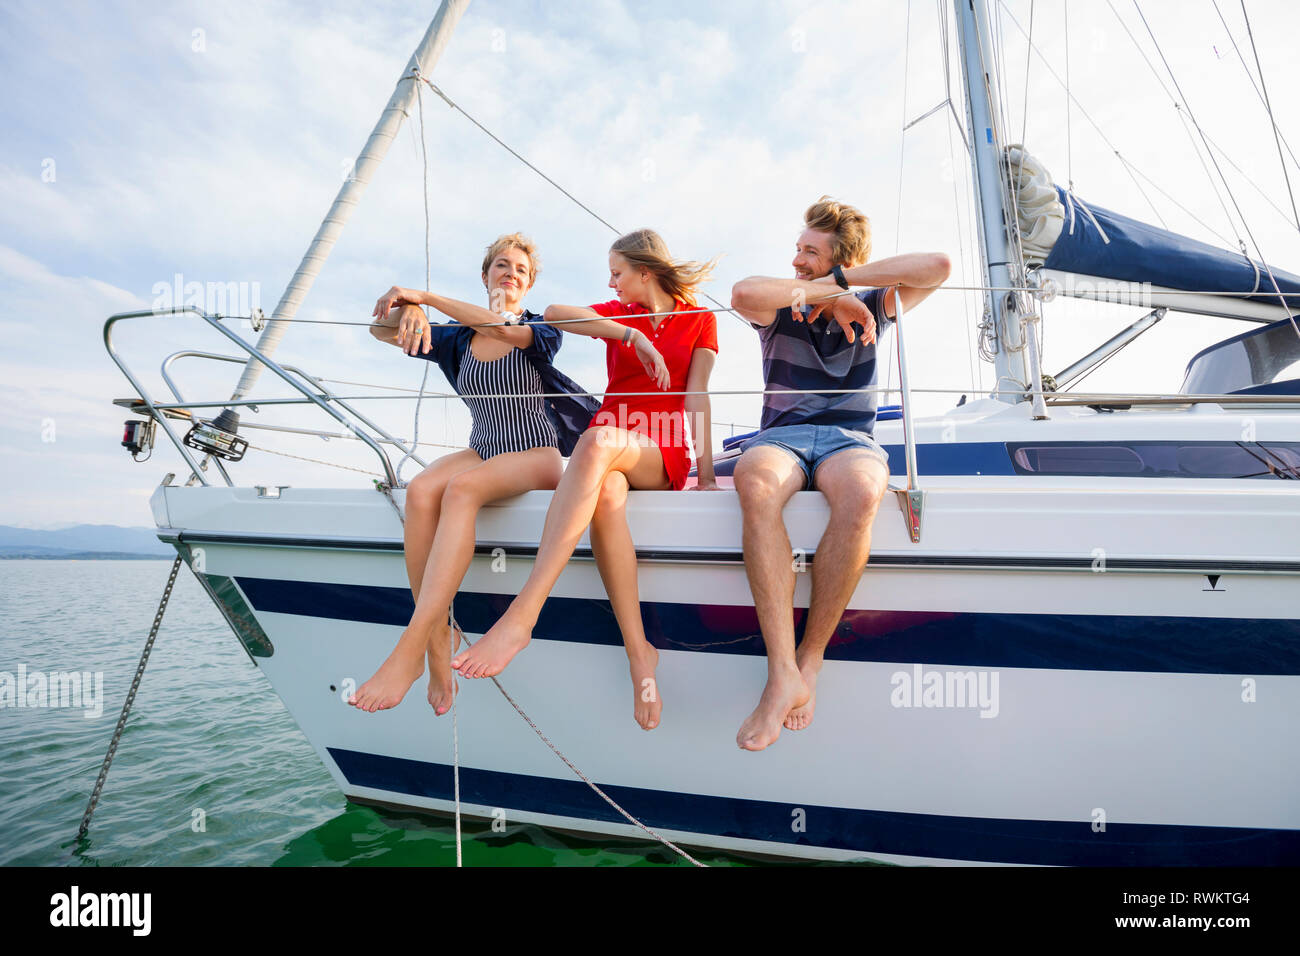 Mature woman and young adults sitting on sailboat on Chiemsee lake, Bavaria, Germany - Stock Image